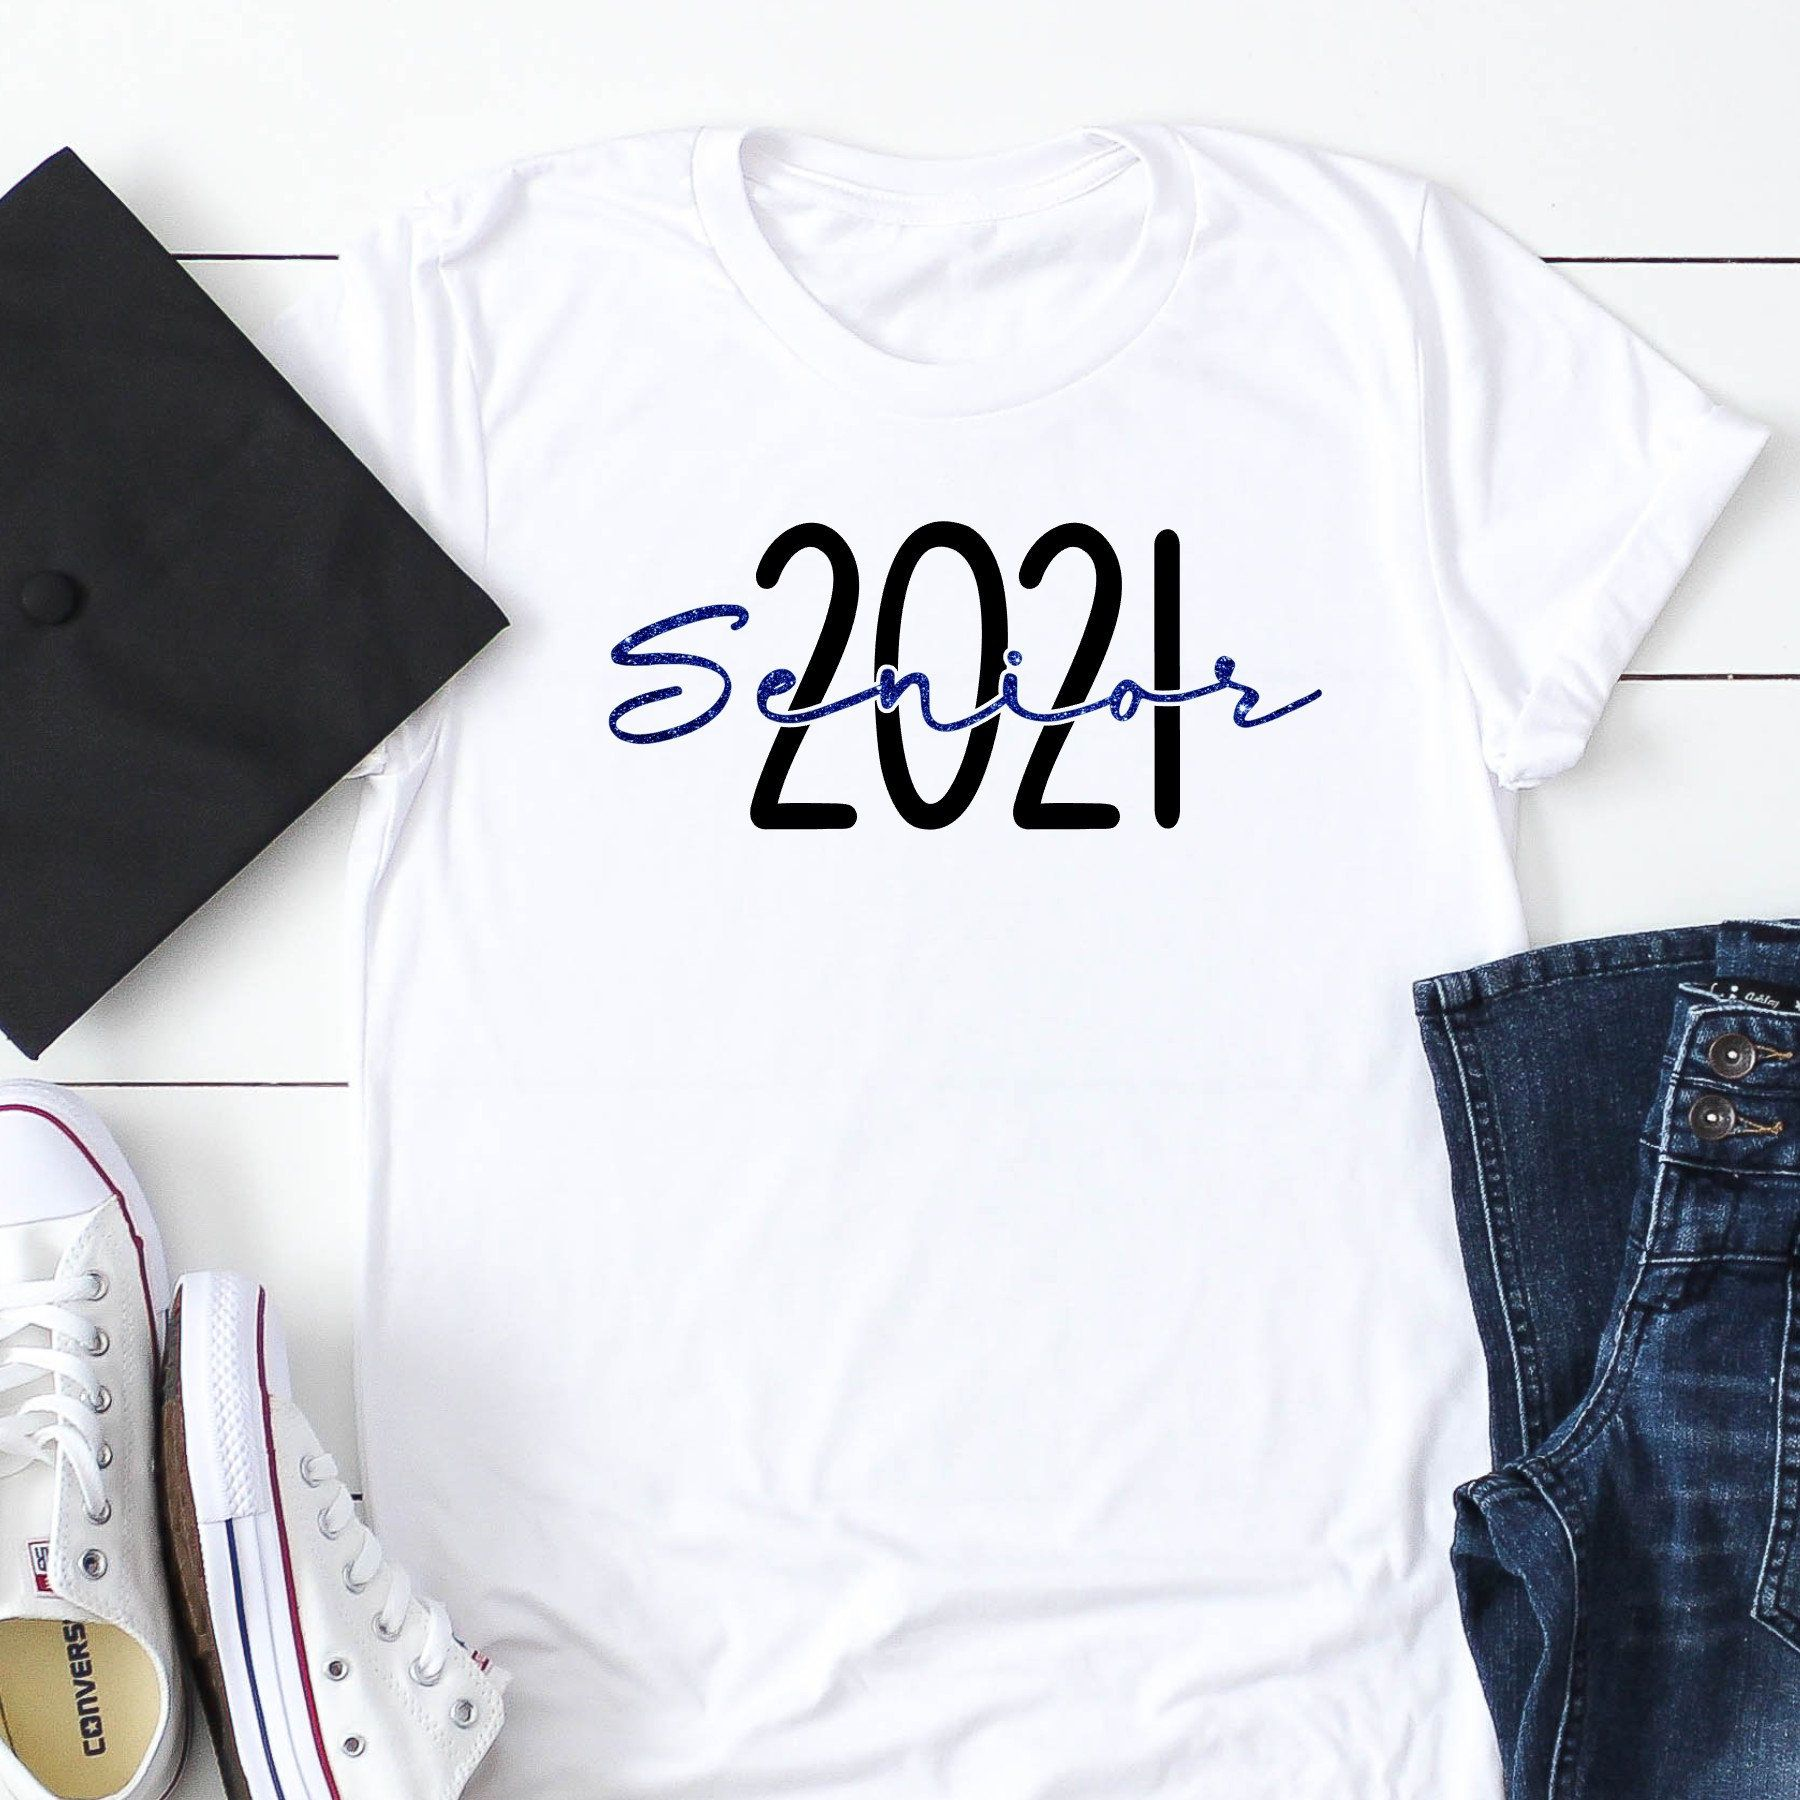 Best Selling Items On Etsy 2021 Senior Class of 2021. Let the Adventure Begin. Graduation | Etsy